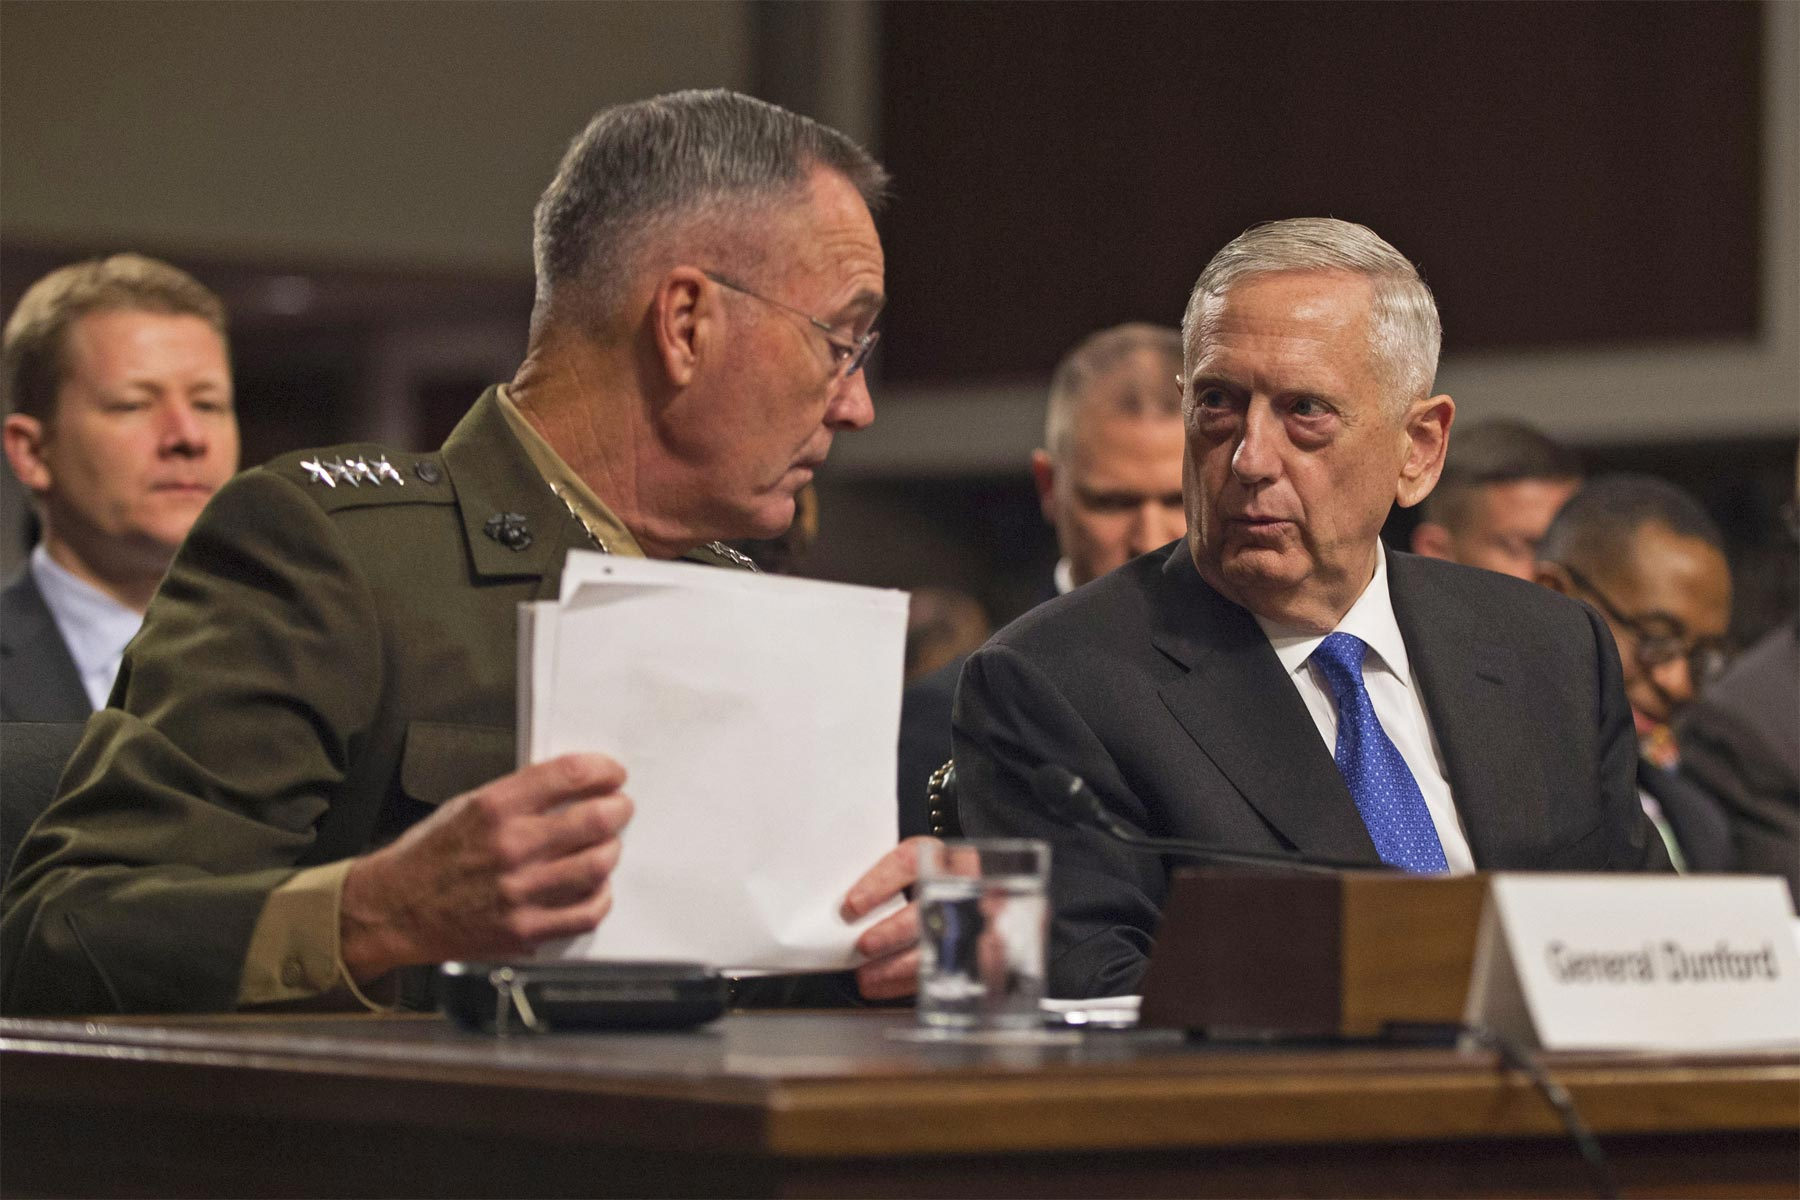 Congress May Require Military to Make Top Brass Misconduct Public